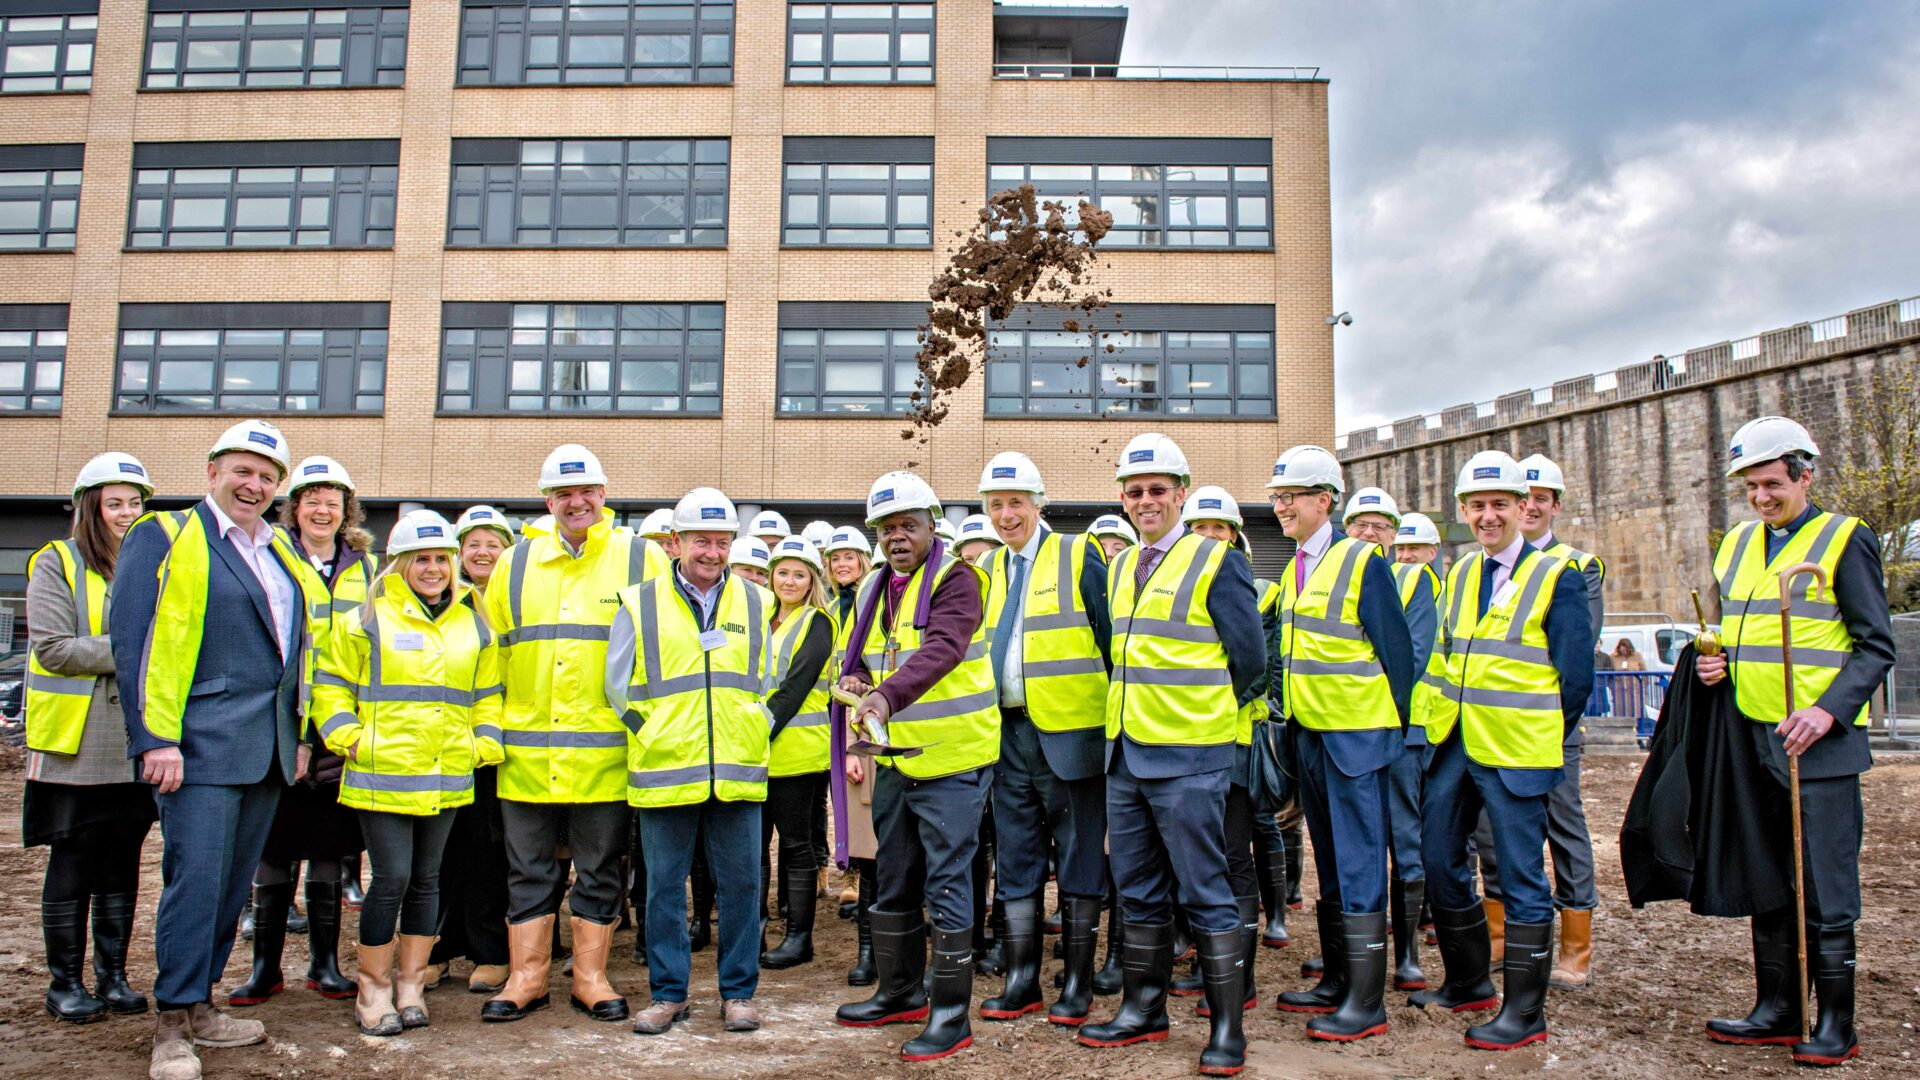 Archbishop of York breaks ground on prestigious Hudson Quarter development